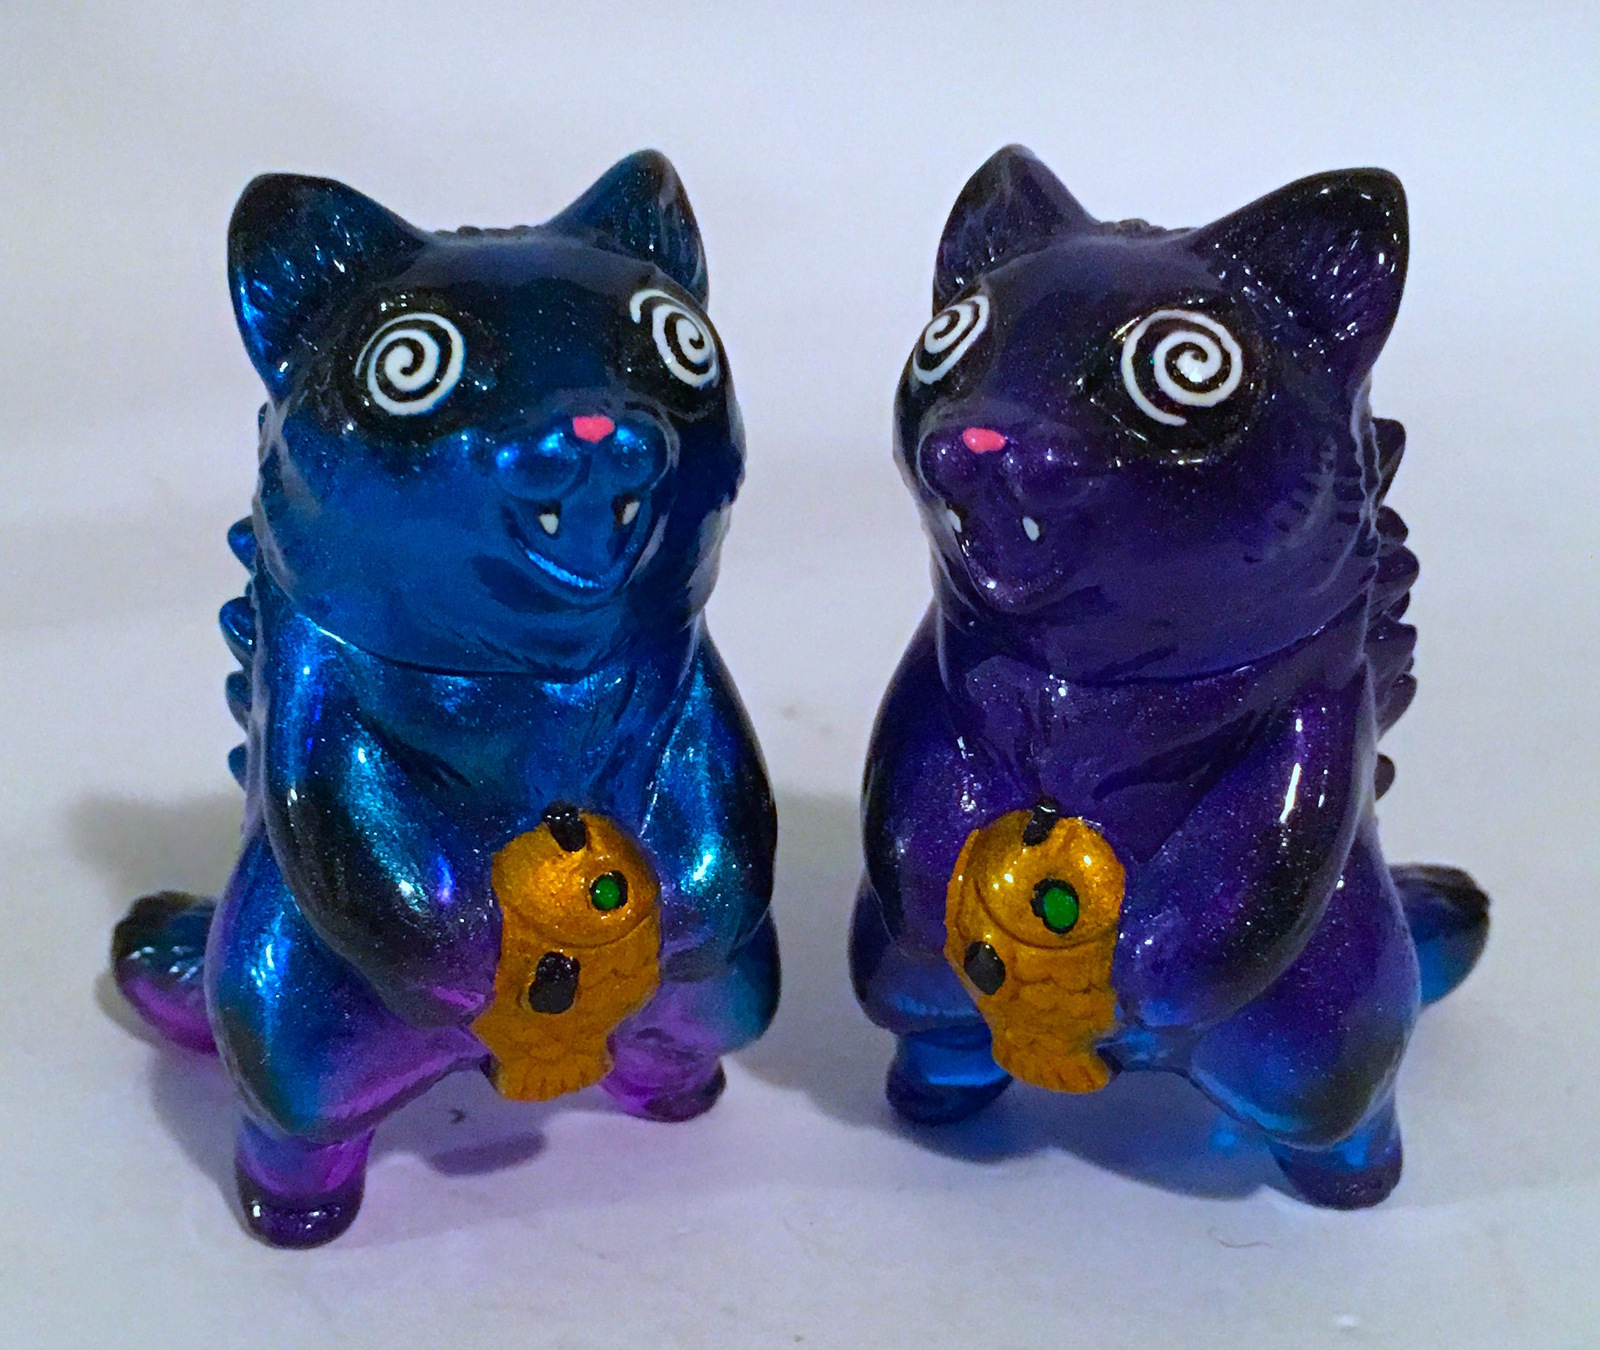 MaxToy x Michael Devera pair of micro Negoras